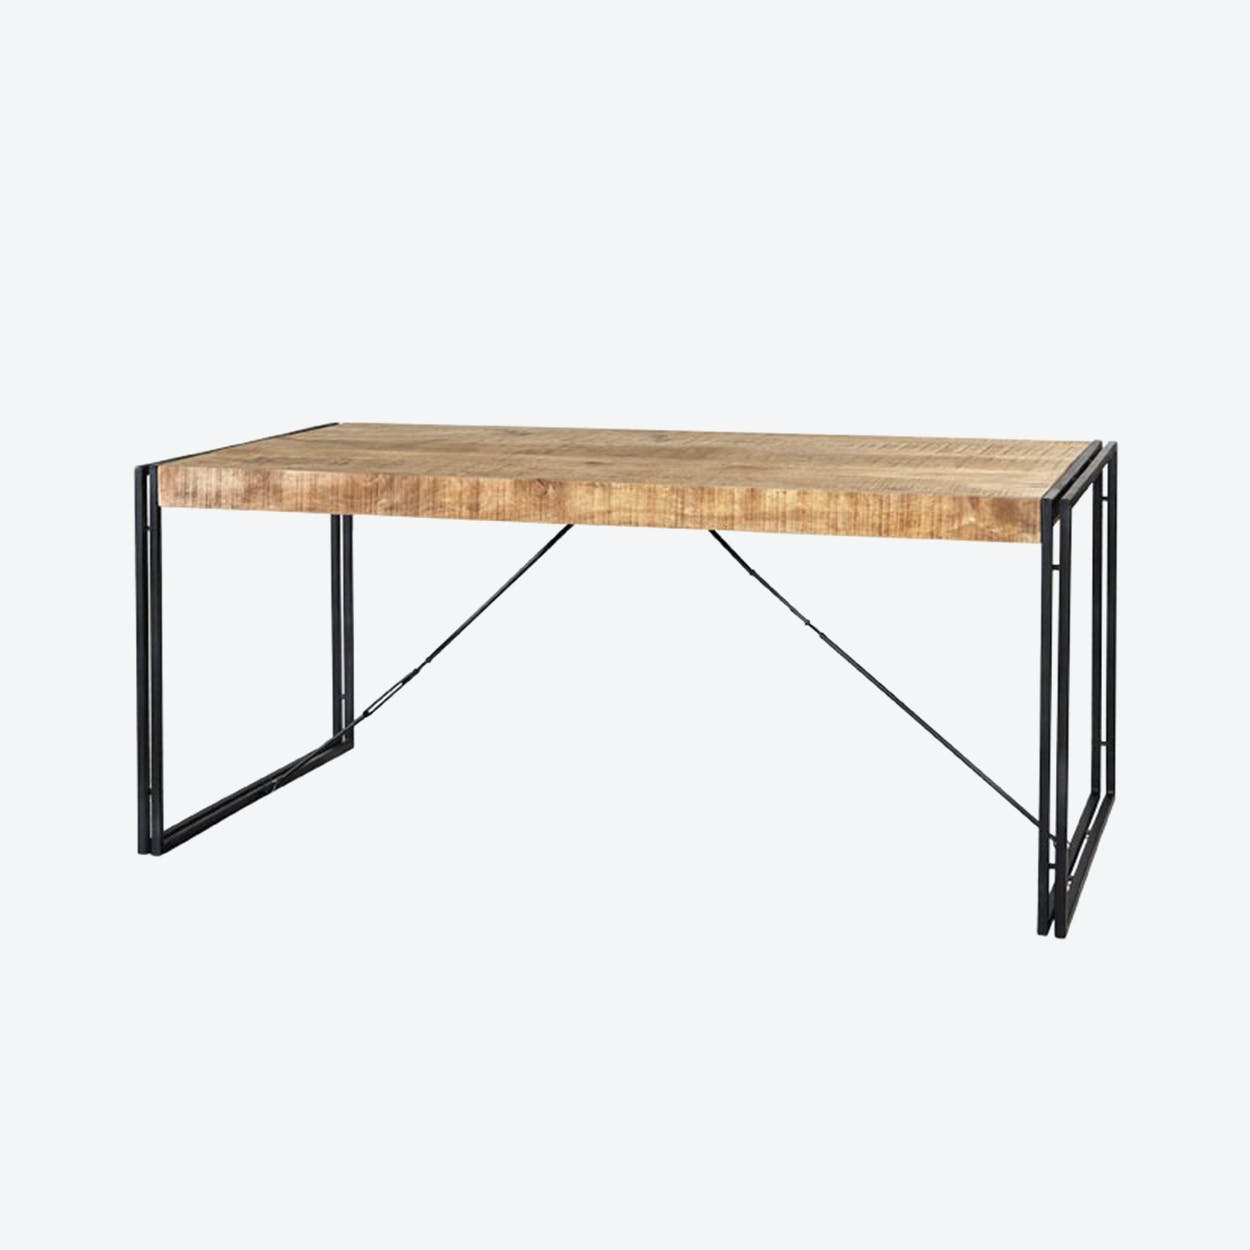 Mango Wood Metal & Wood Dining Table - Large